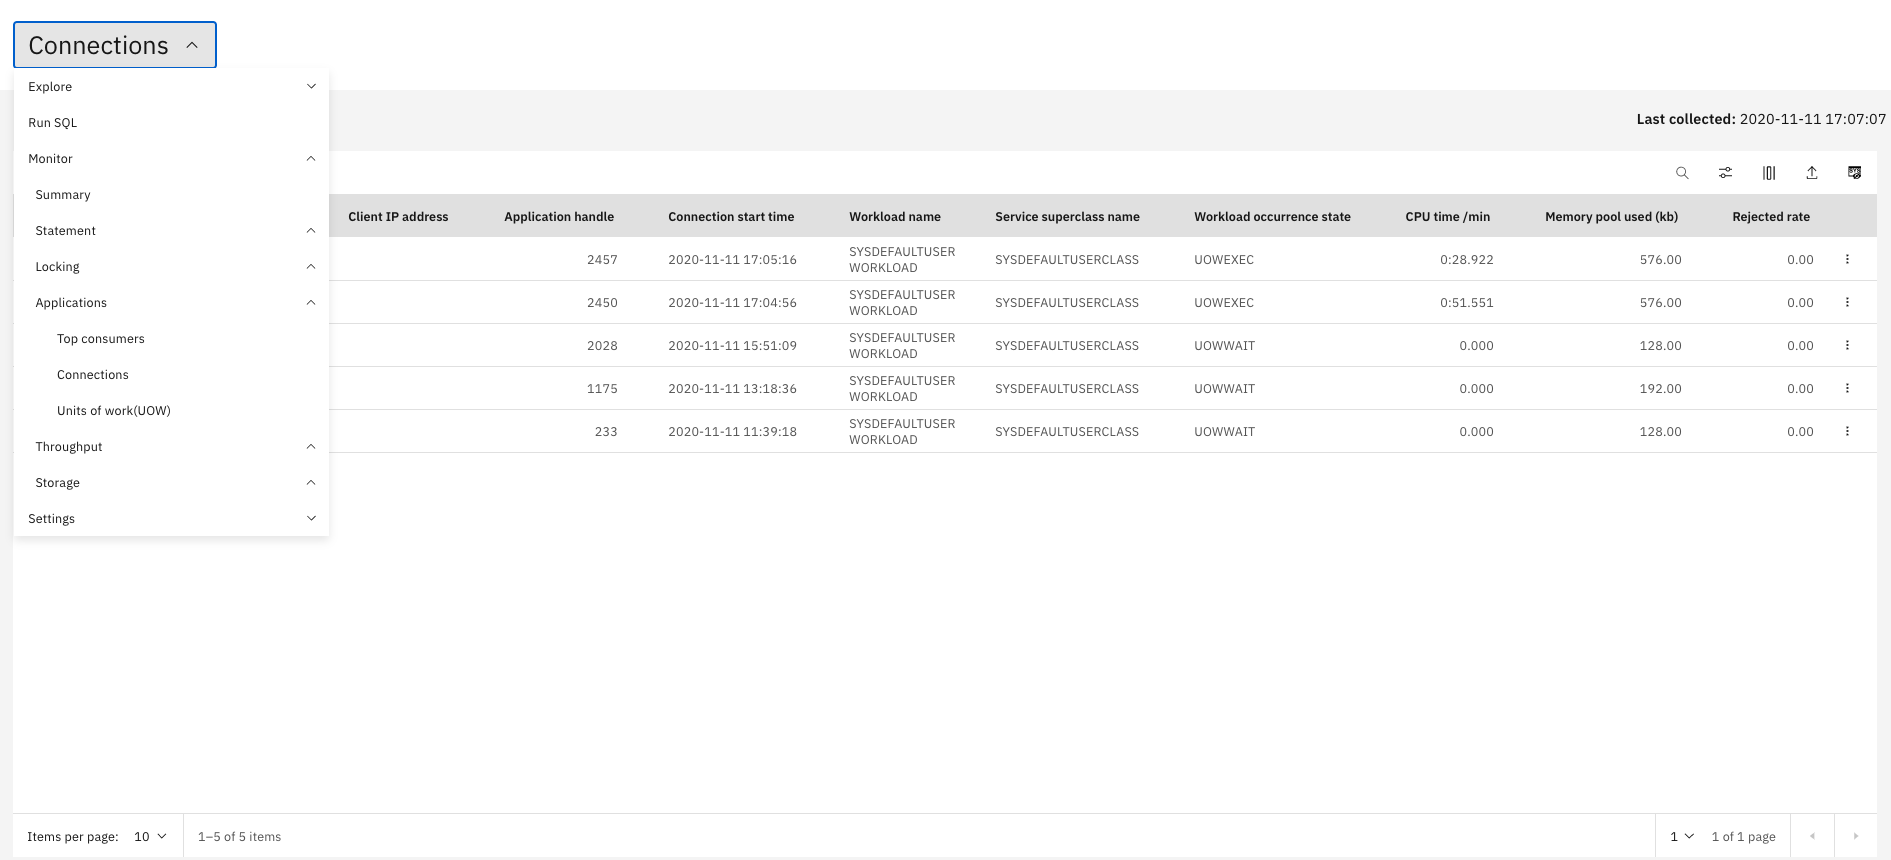 Screen capture of a page from the Db2 Data Management Console showing a list of connections to the Db2 Big SQL service